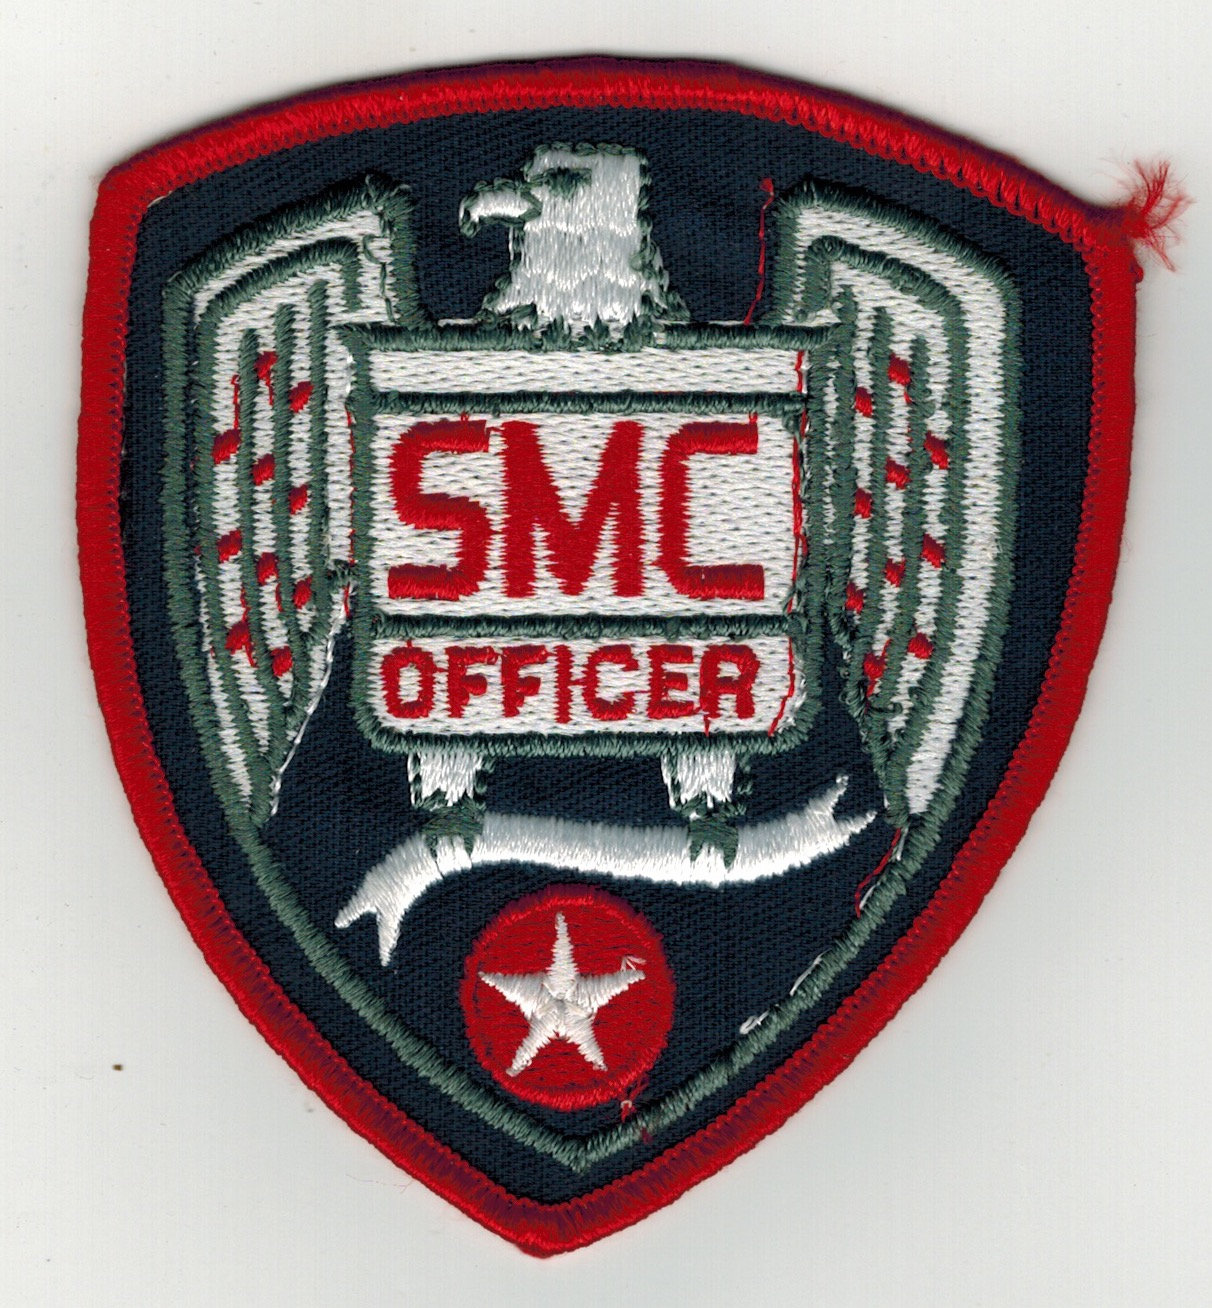 SMC SECURITY OFFICER